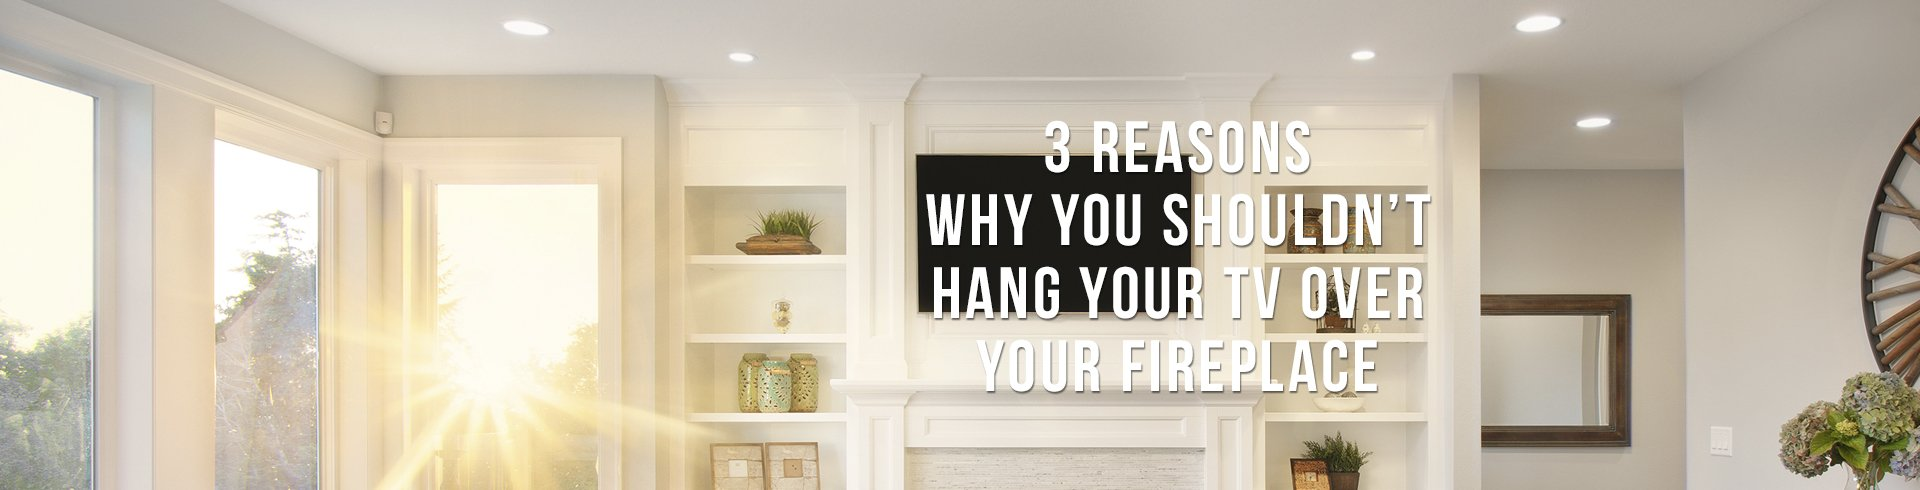 3 Reasons Why You Shouldn't Hang Your TV Over the Fireplace